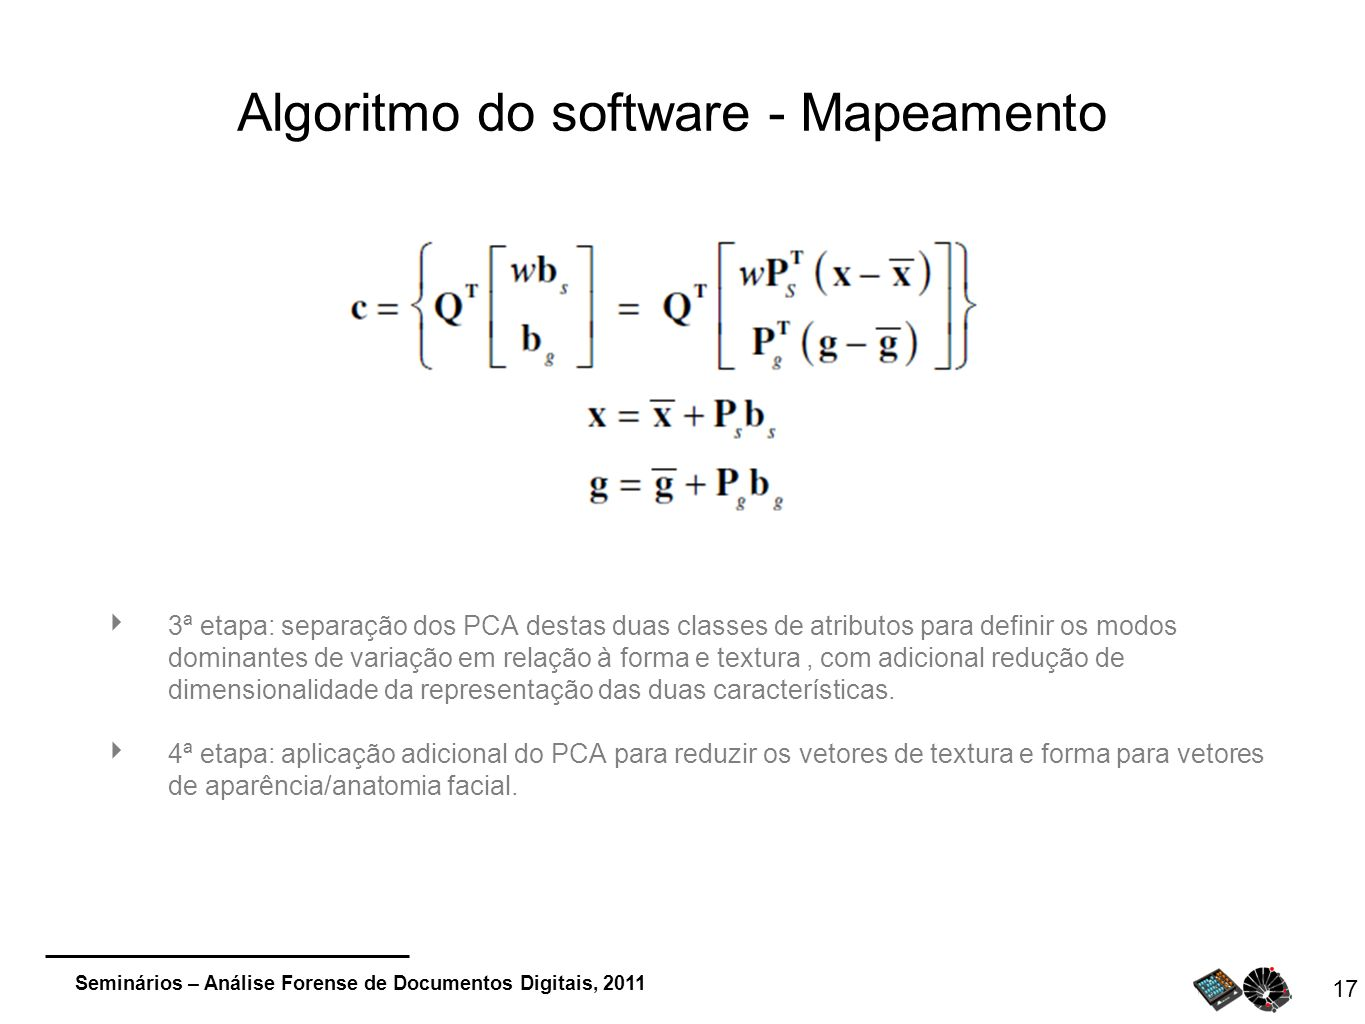 Algoritmo do software - Mapeamento